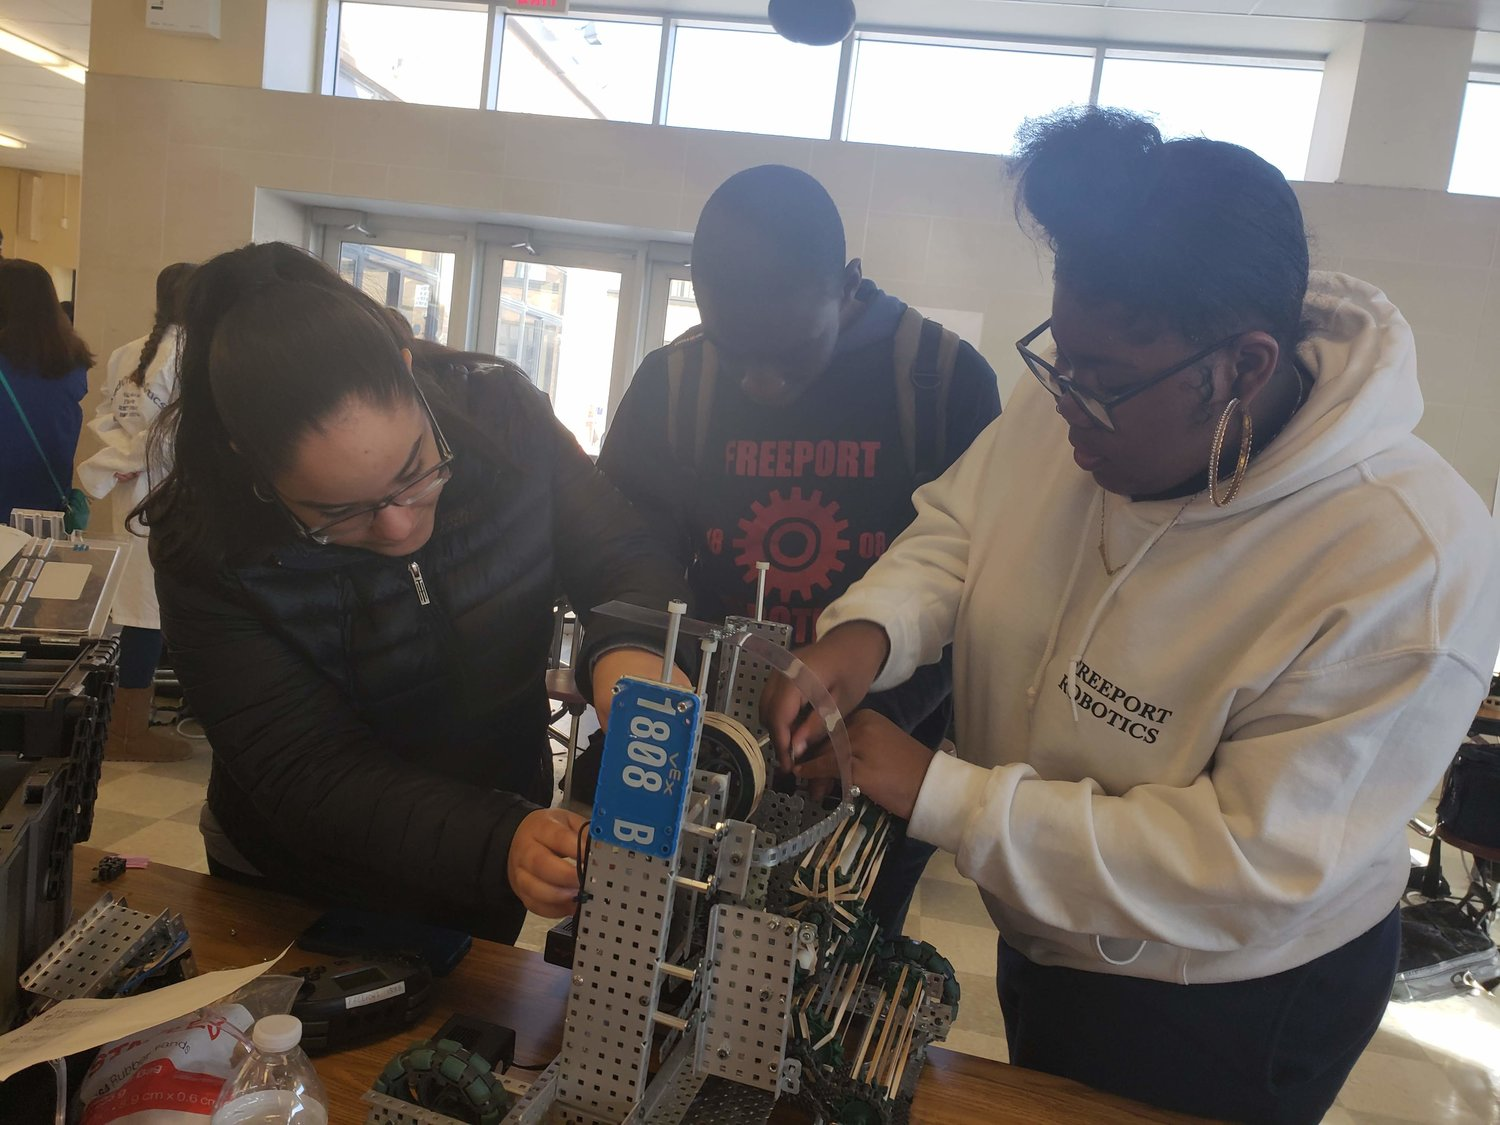 Freeport High School junior Yenifer Tiburcio-Jerez, 16, far left, helped her teammates, junior Mason Bazemore, 16, and sophomore Diamond Anderson, 15, make last-minute adjustments to their robot before the next battle round at the fifth annual Robotics Competition at FHS last Saturday.